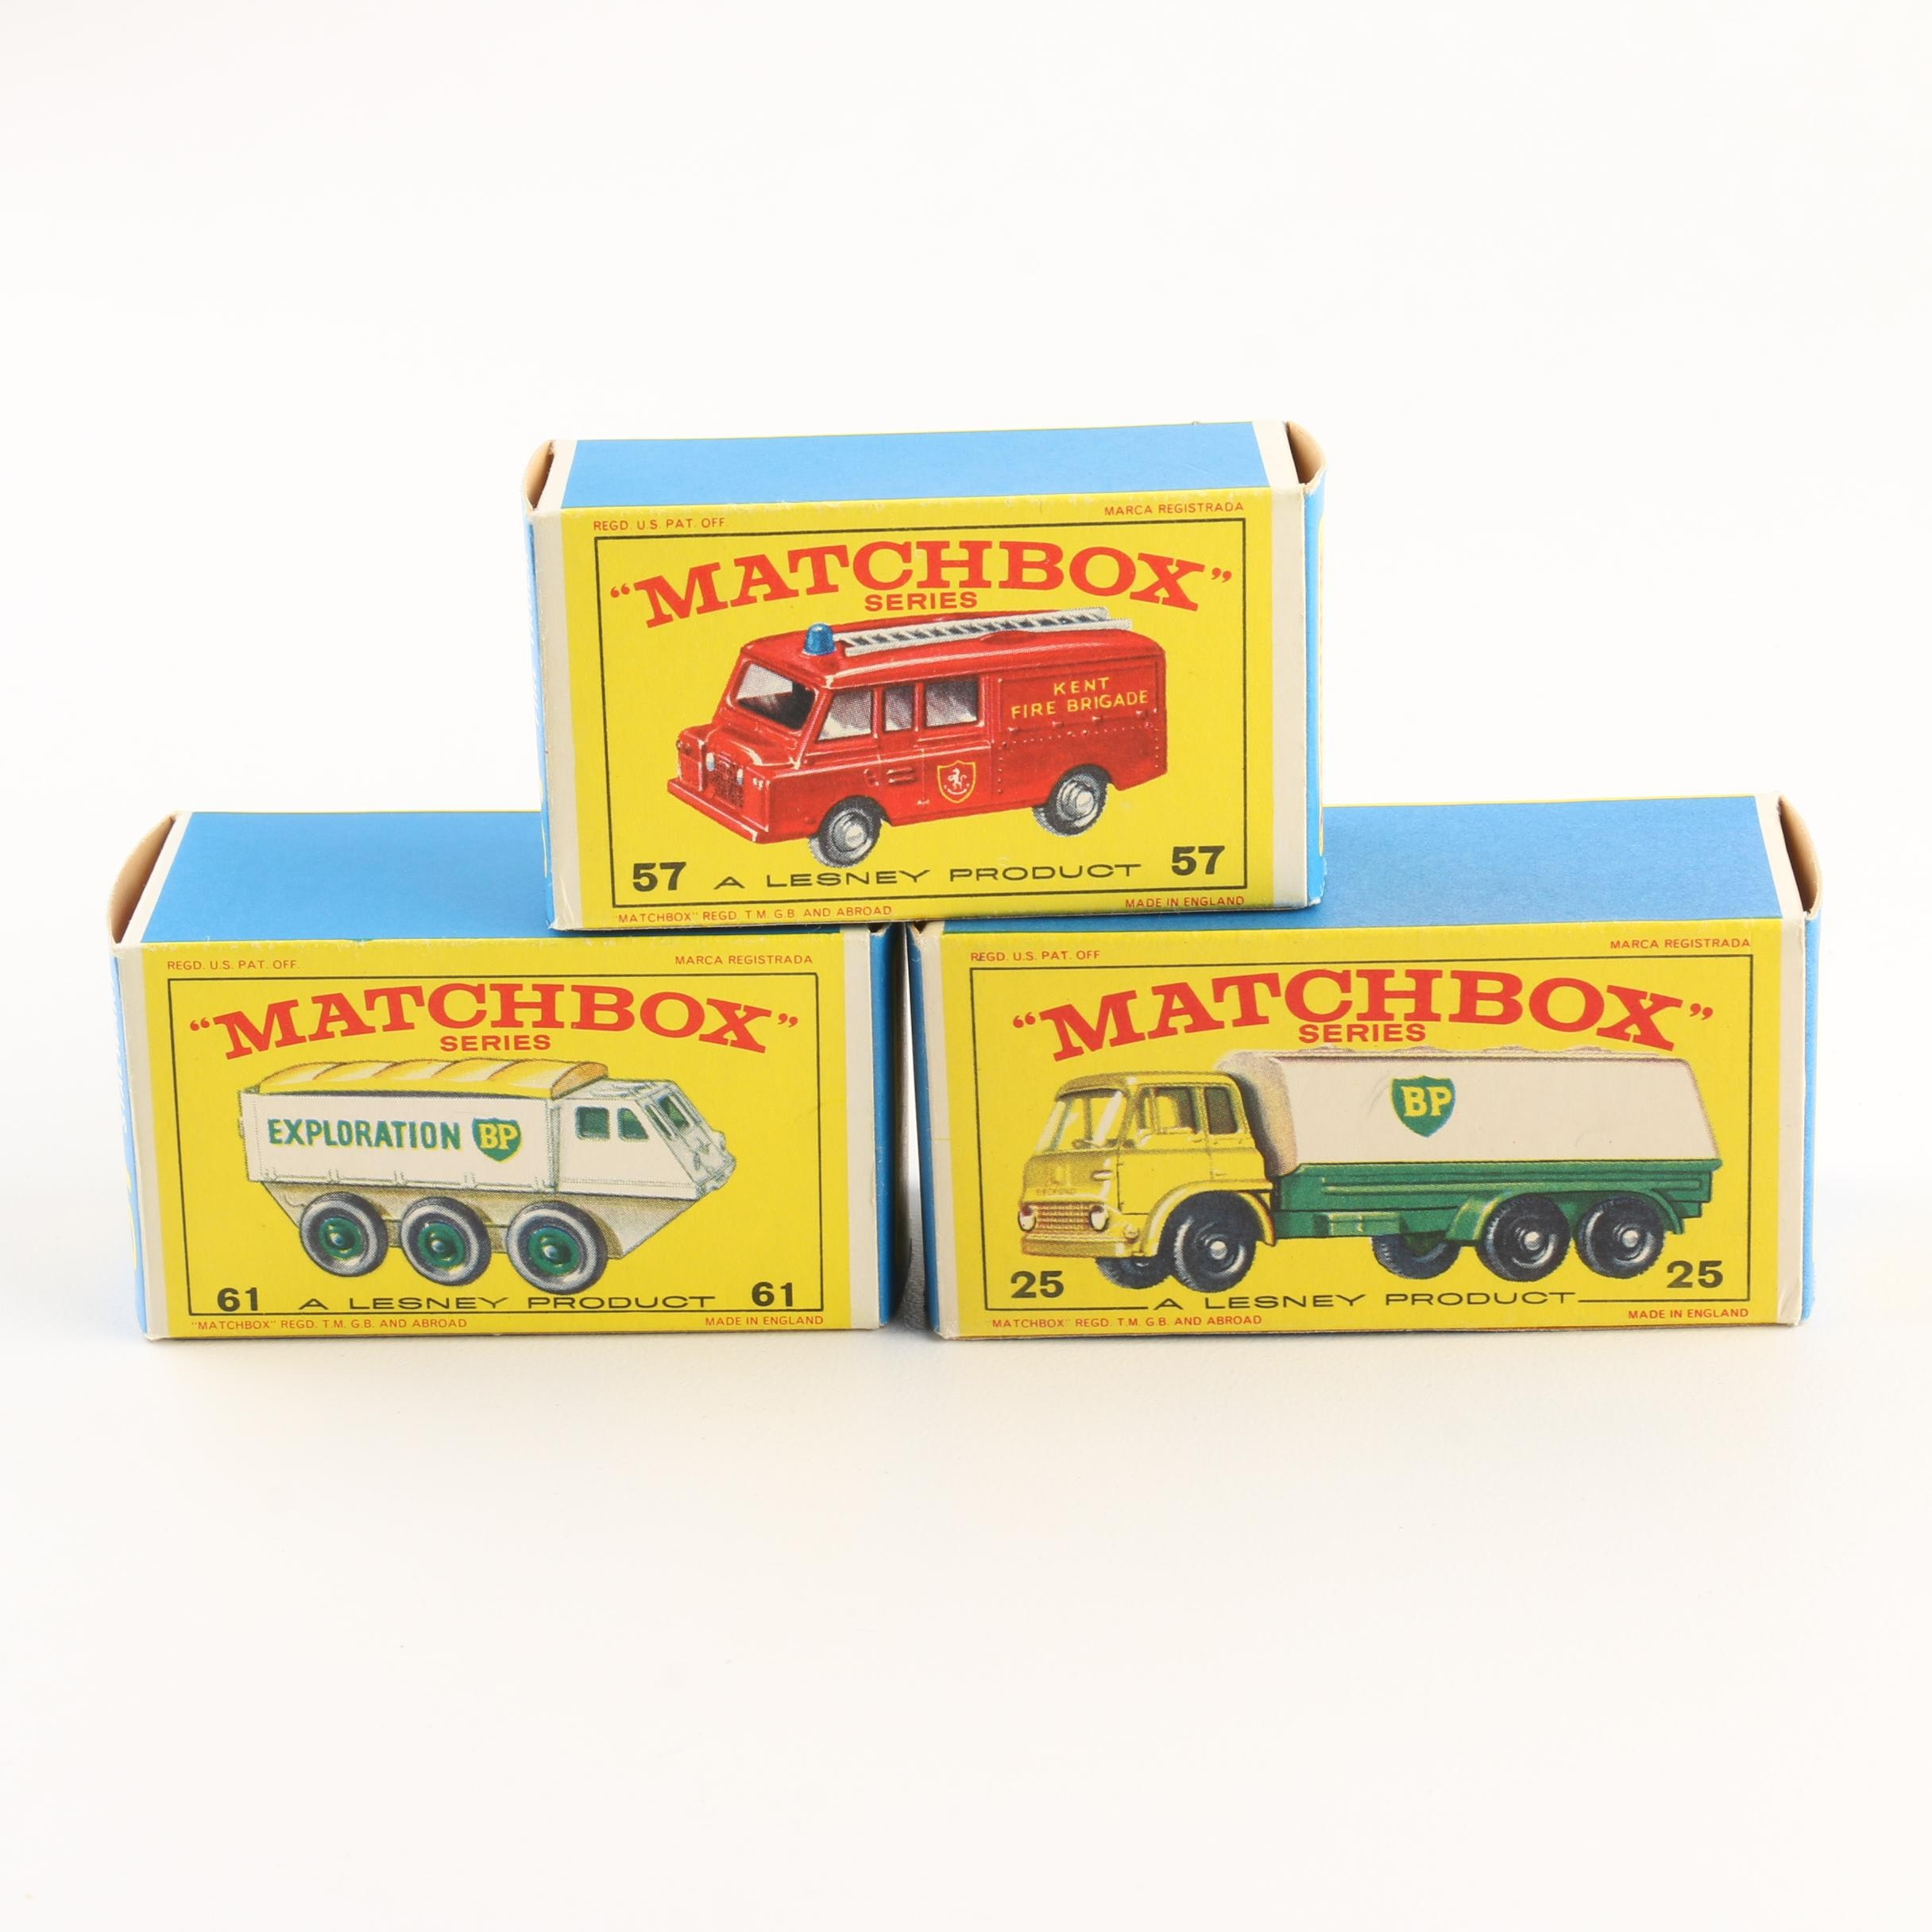 Group of Three 1960s Matchbox Cars Including 1966 #61 BP Exploration Vehicle